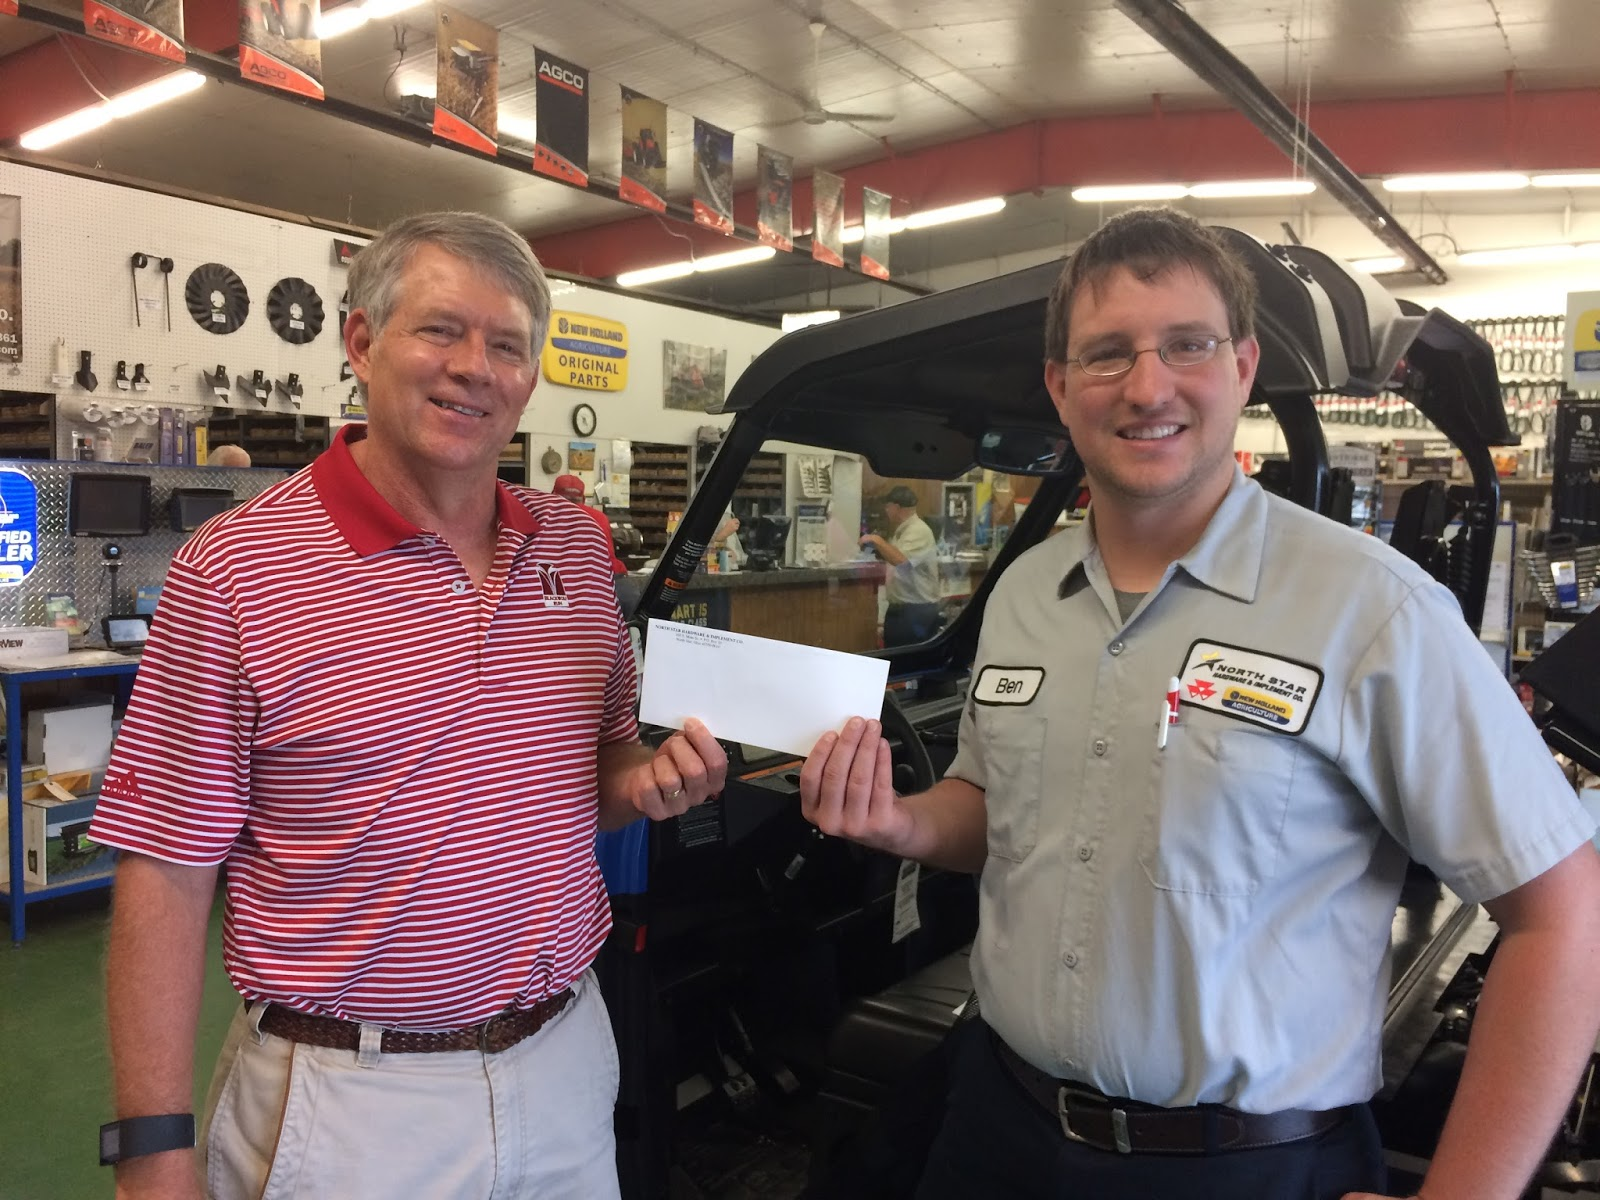 Ohio darke county north star - Ben Selhorst Of North Star Hardware Implement Co Is Shown Giving A Donation To Steve Litchfield Financial Officer For Darke Co Special Olympics